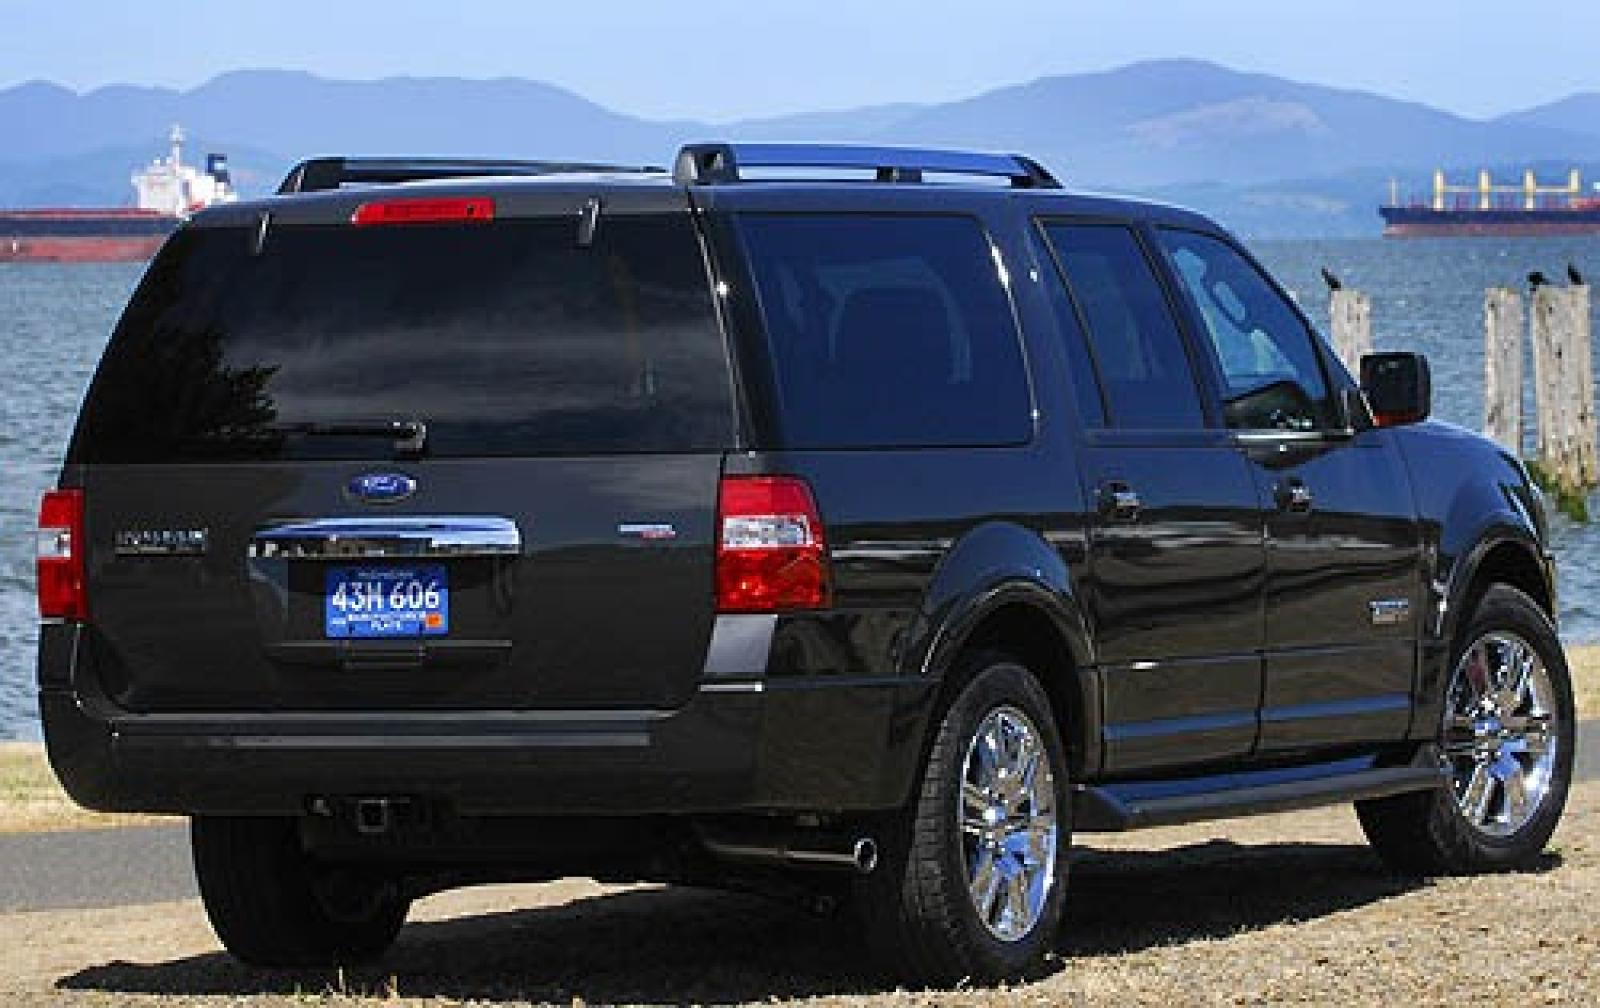 2007 ford expedition el information and photos zombiedrive. Black Bedroom Furniture Sets. Home Design Ideas